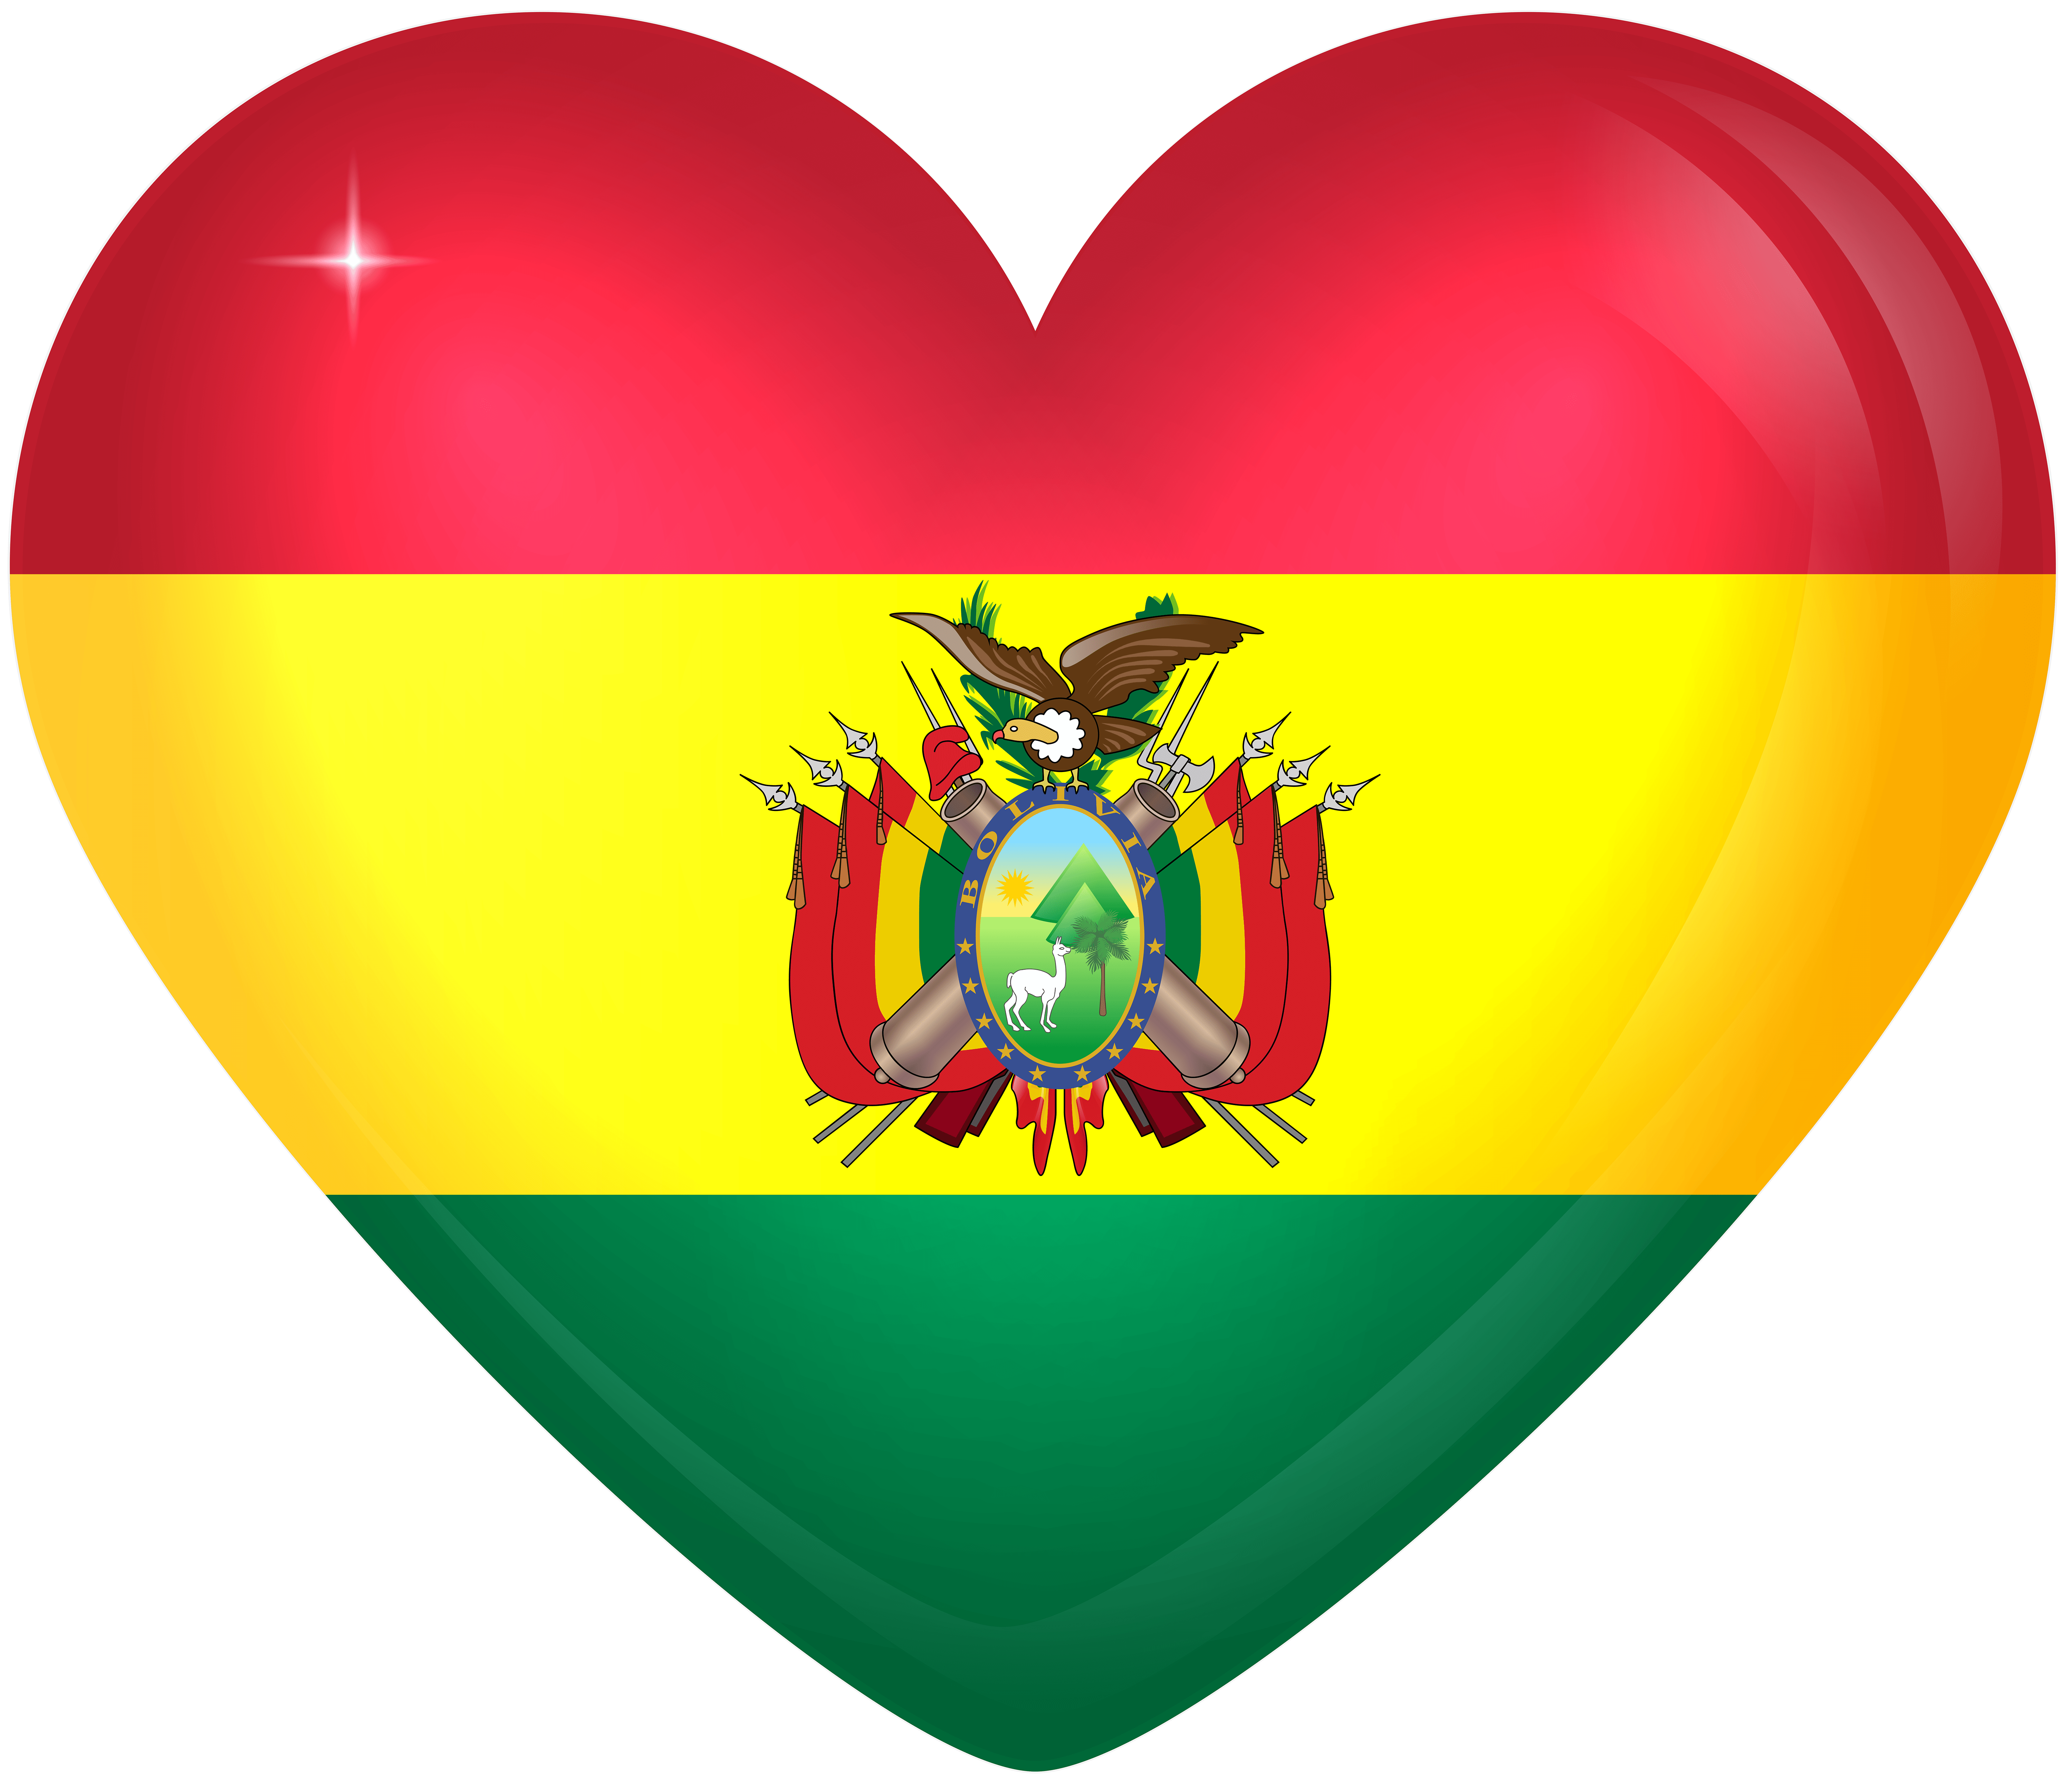 Bolivia Large Heart Flag | Gallery Yopriceville - High-Quality ...